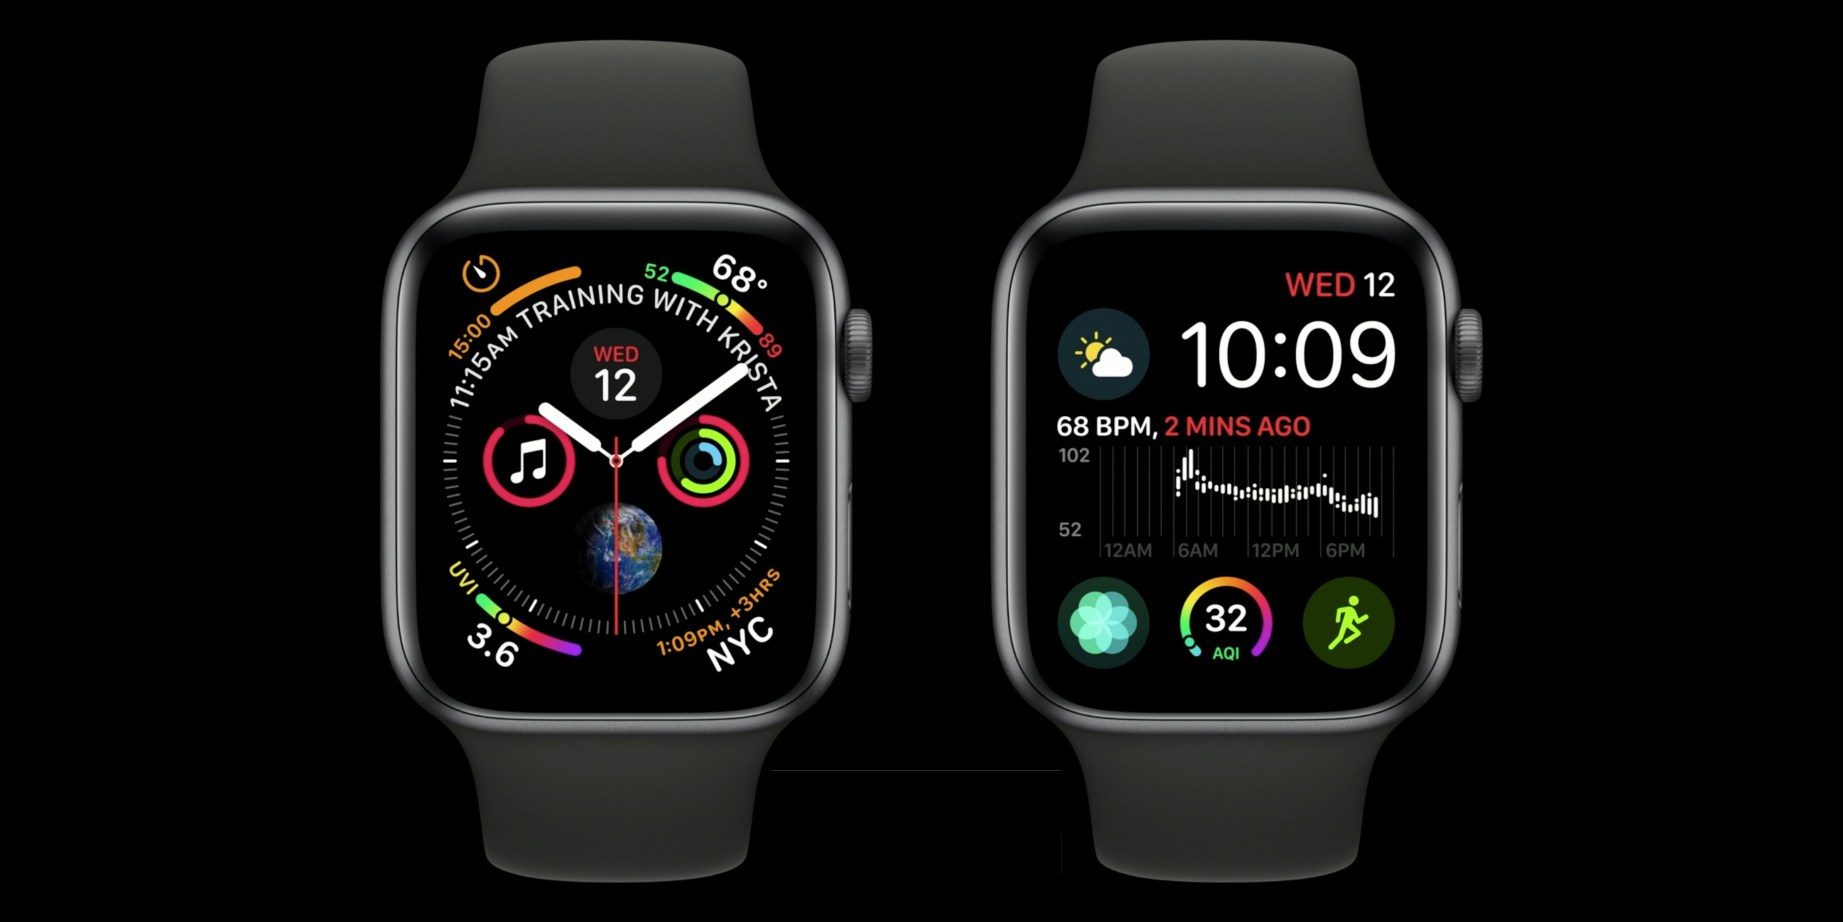 https://9to5mac.com/2019/09/02/apple-watch-sleep-tracking-revealed-sleep-quality-battery-management-more/